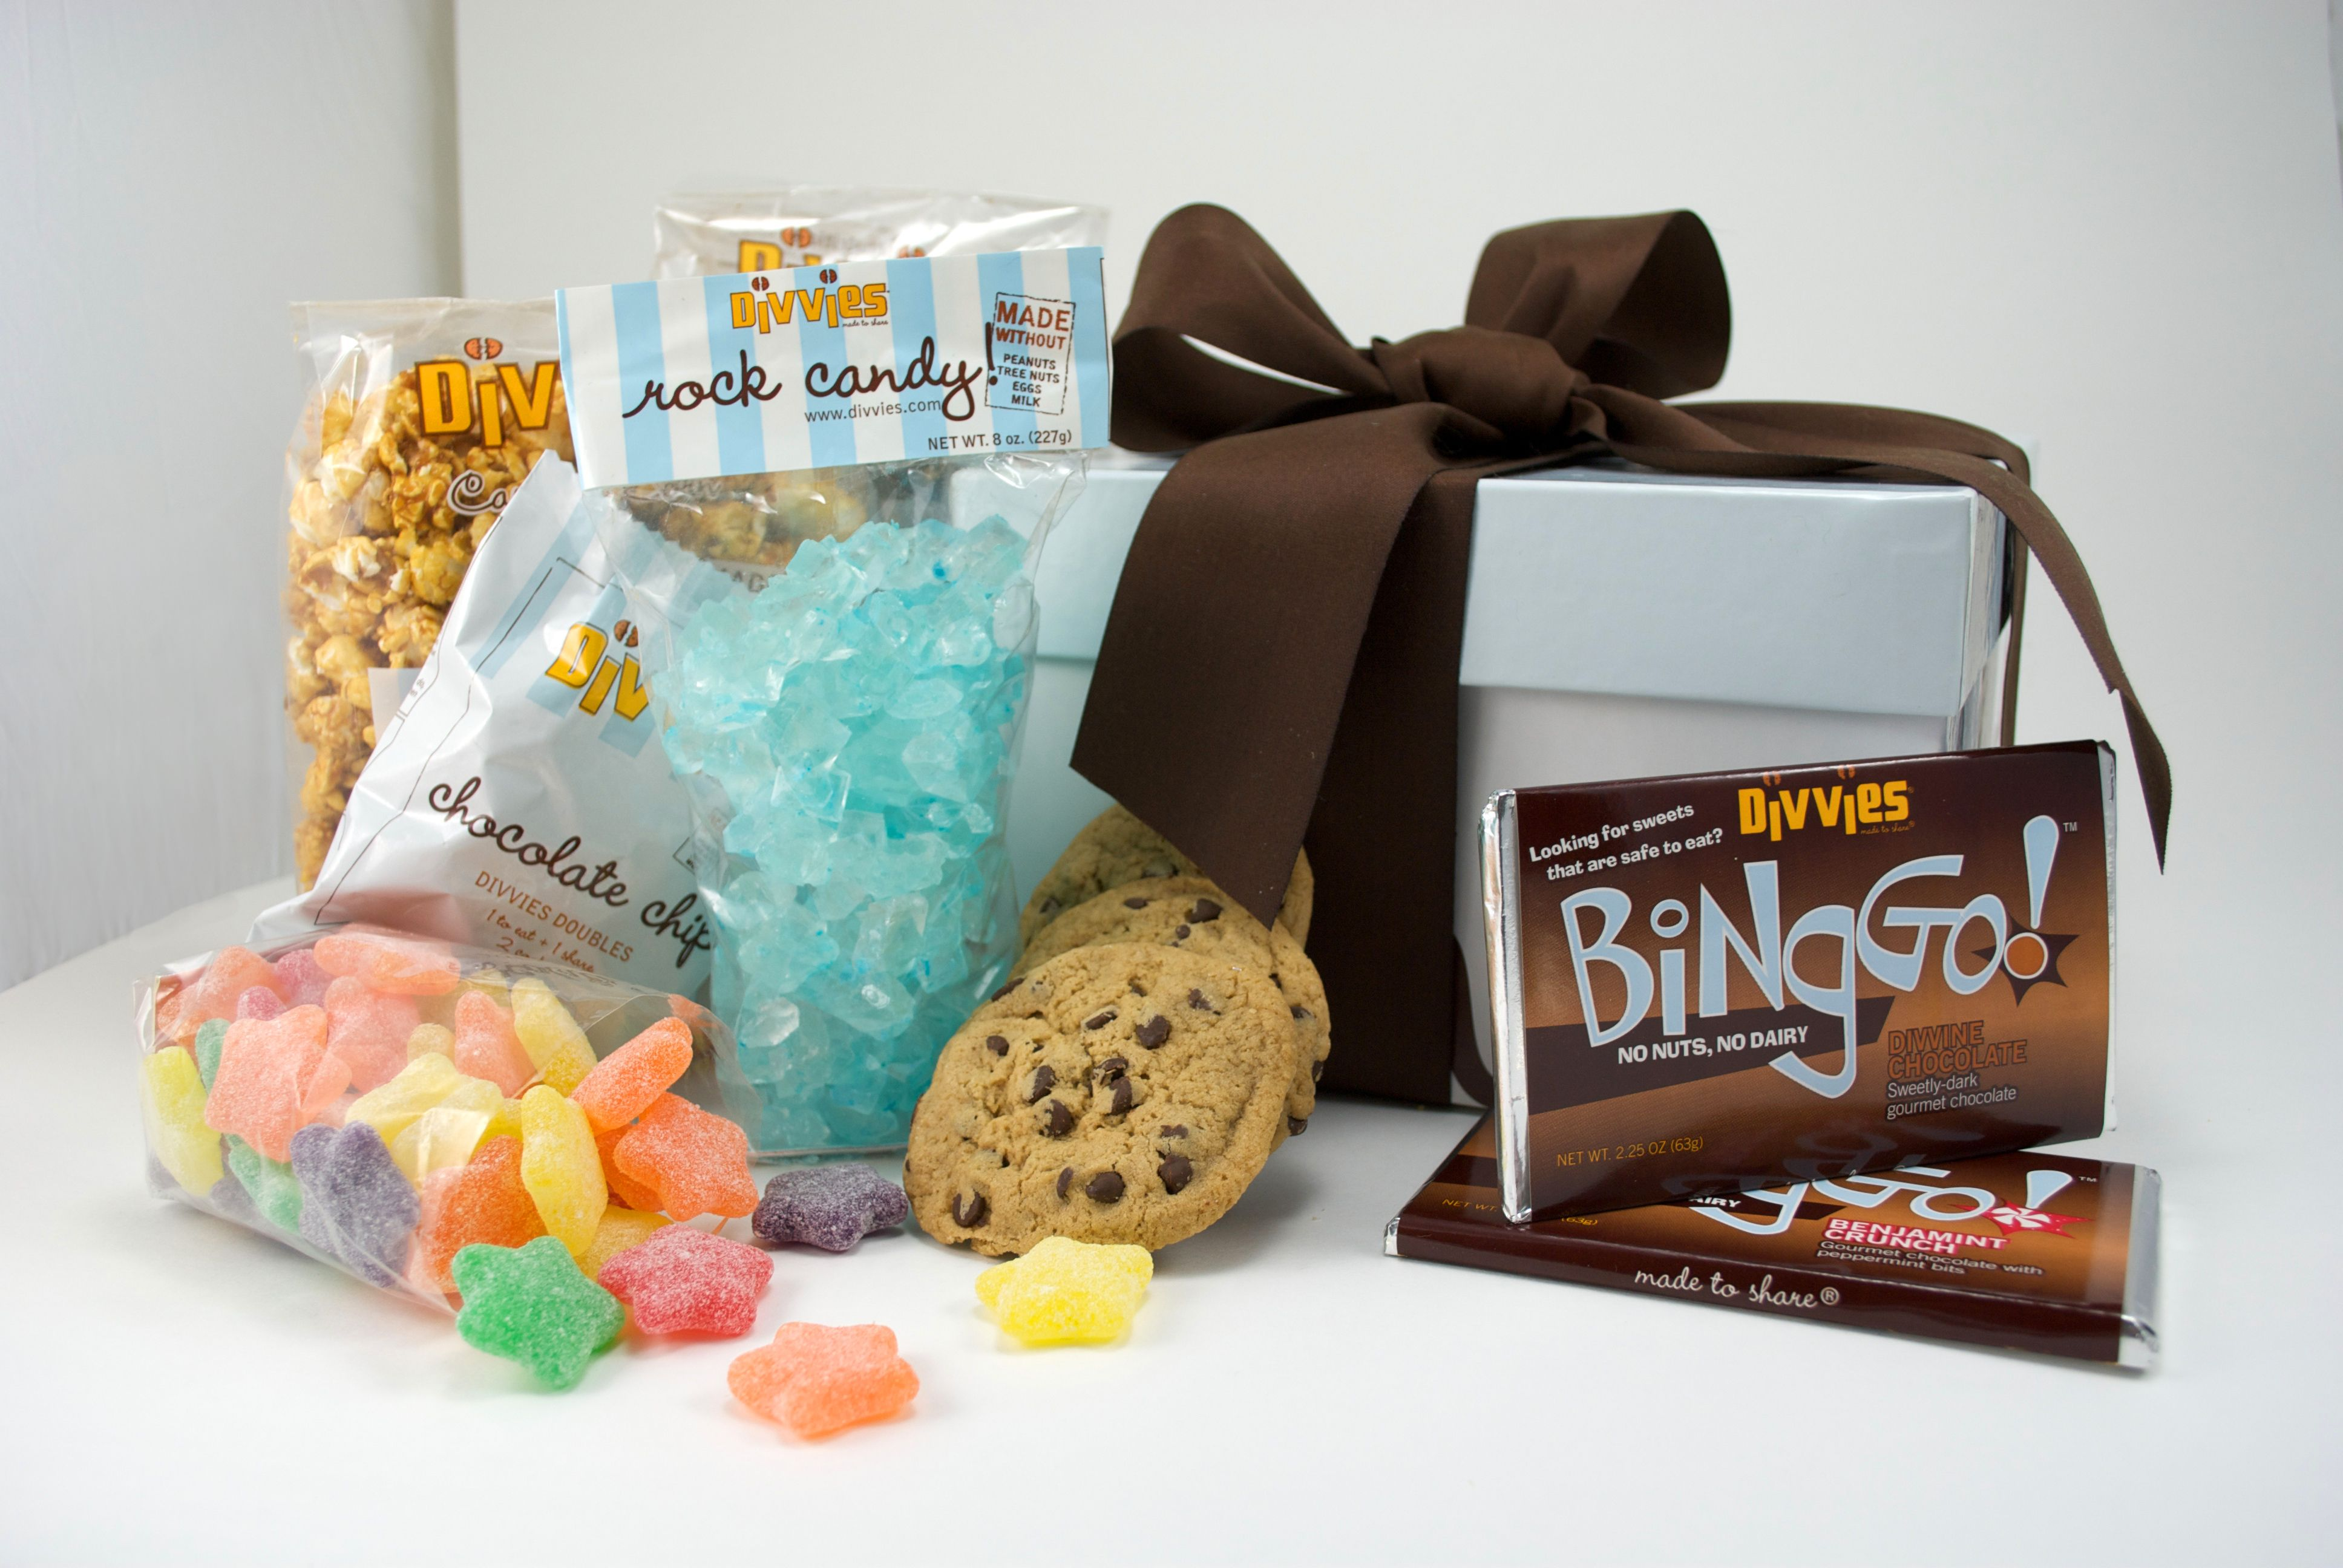 Finding a Great Gift for People With Food Allergies